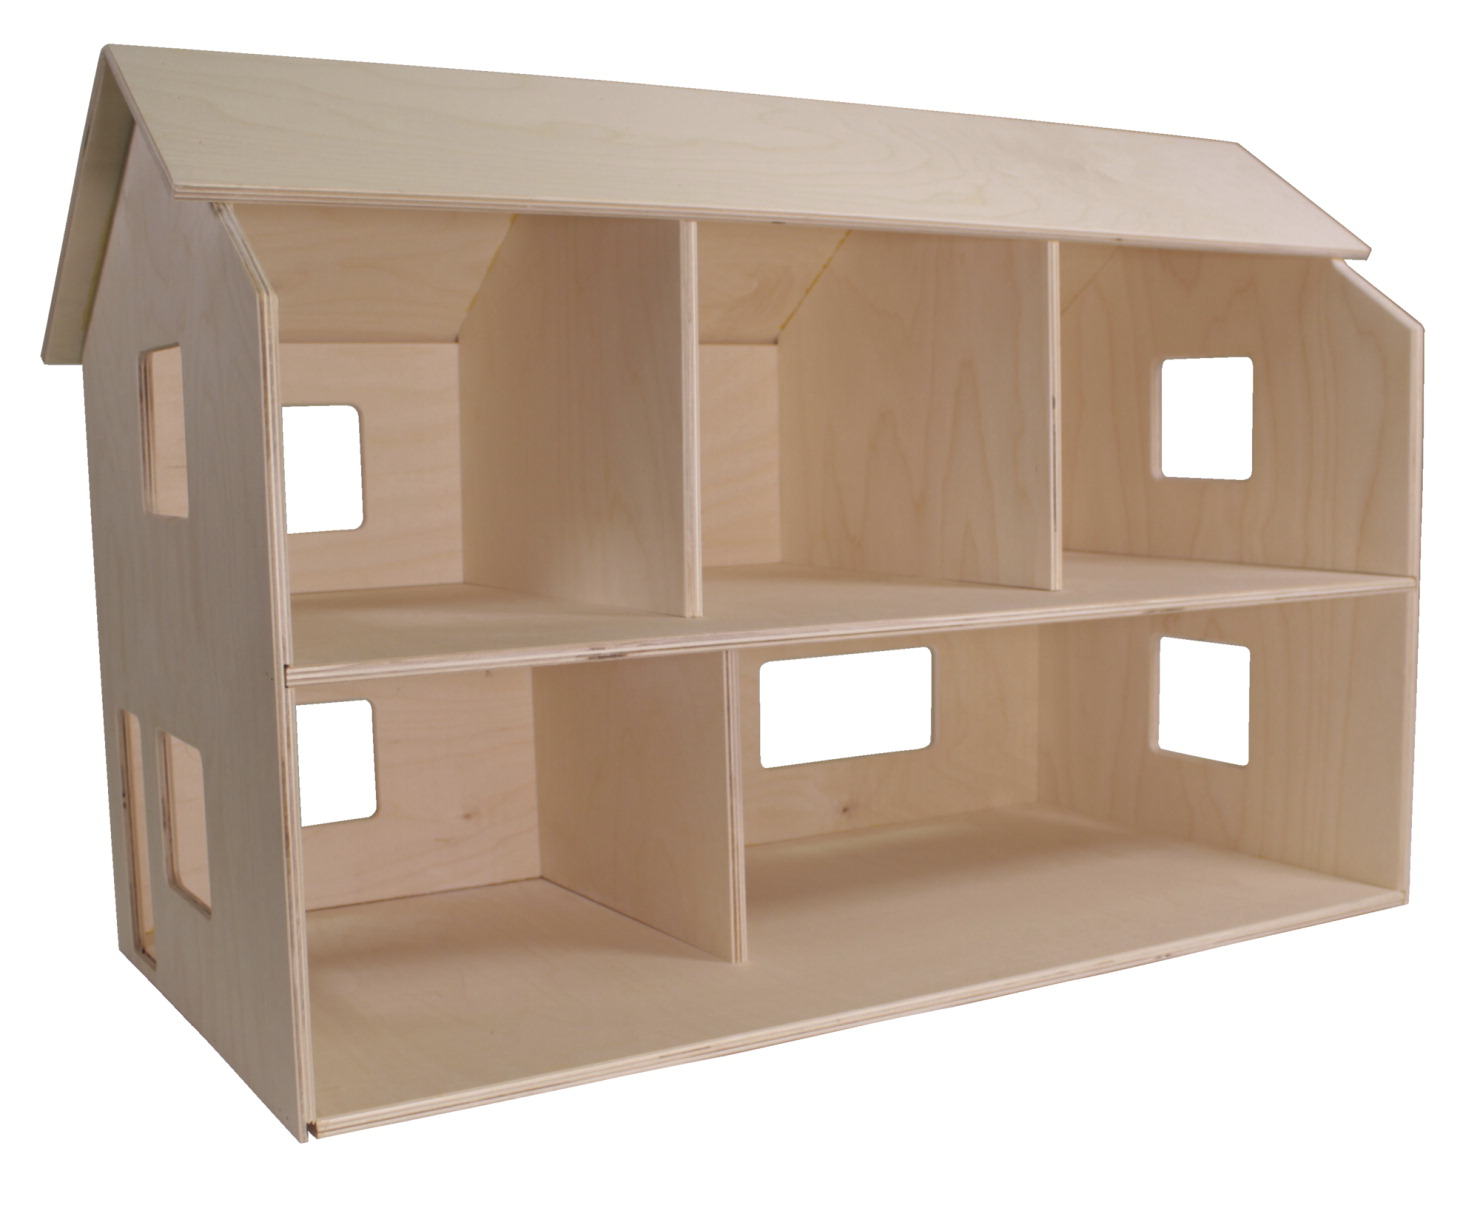 Childcraft Classic Wooden Dolls House, Unfinished, 29-3/4 x 15-1/2 x 19-1/2 Inches